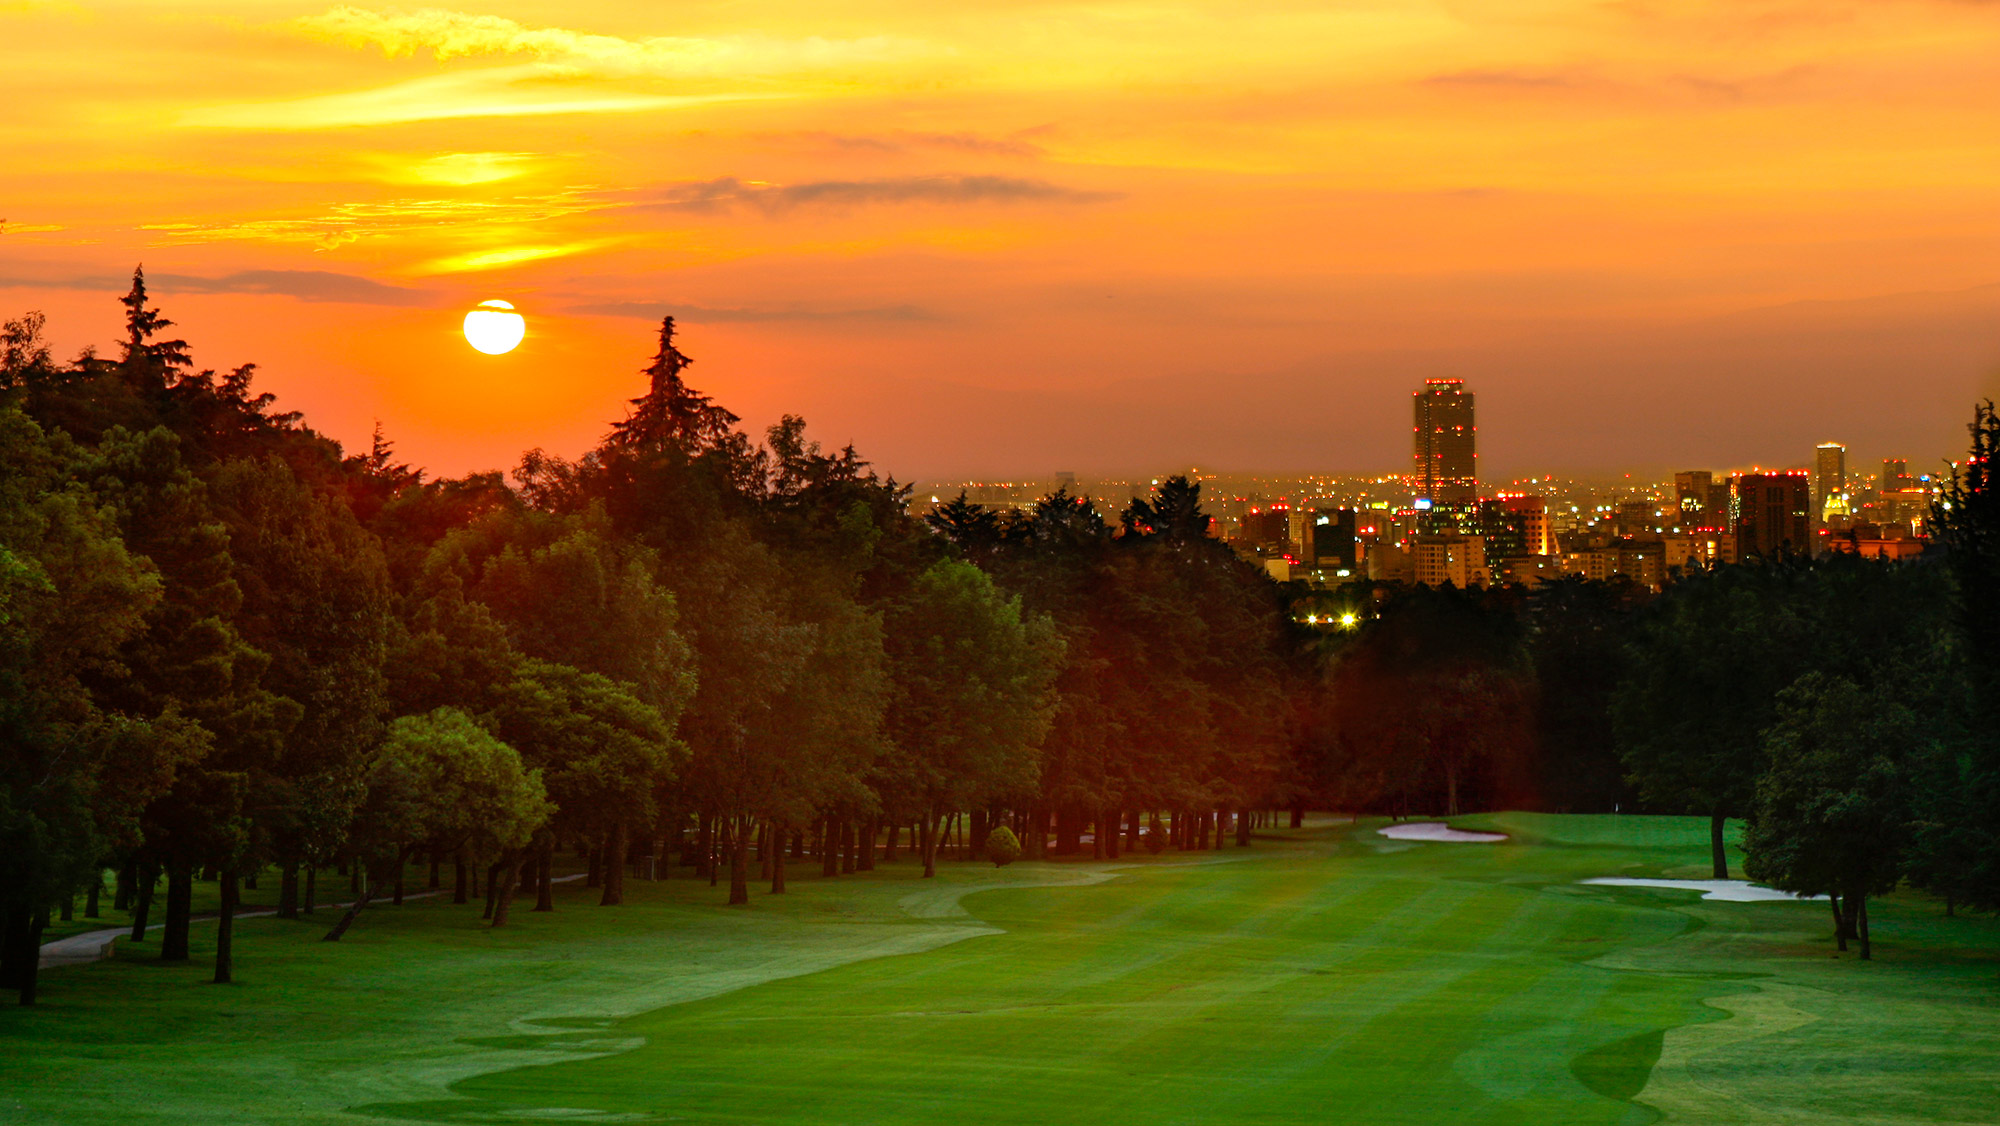 "This month, the WGC-Mexico Championship will introduce Tour players to this venerable, tree-lined 1920s track near Mexico City, which boasts slender fairways, uphill closing holes and compelling views of the capital (aka ""The City of Palaces""). Roberto De Vicenzo, Ben Crenshaw and Jay Haas all won Mexican Open titles here."